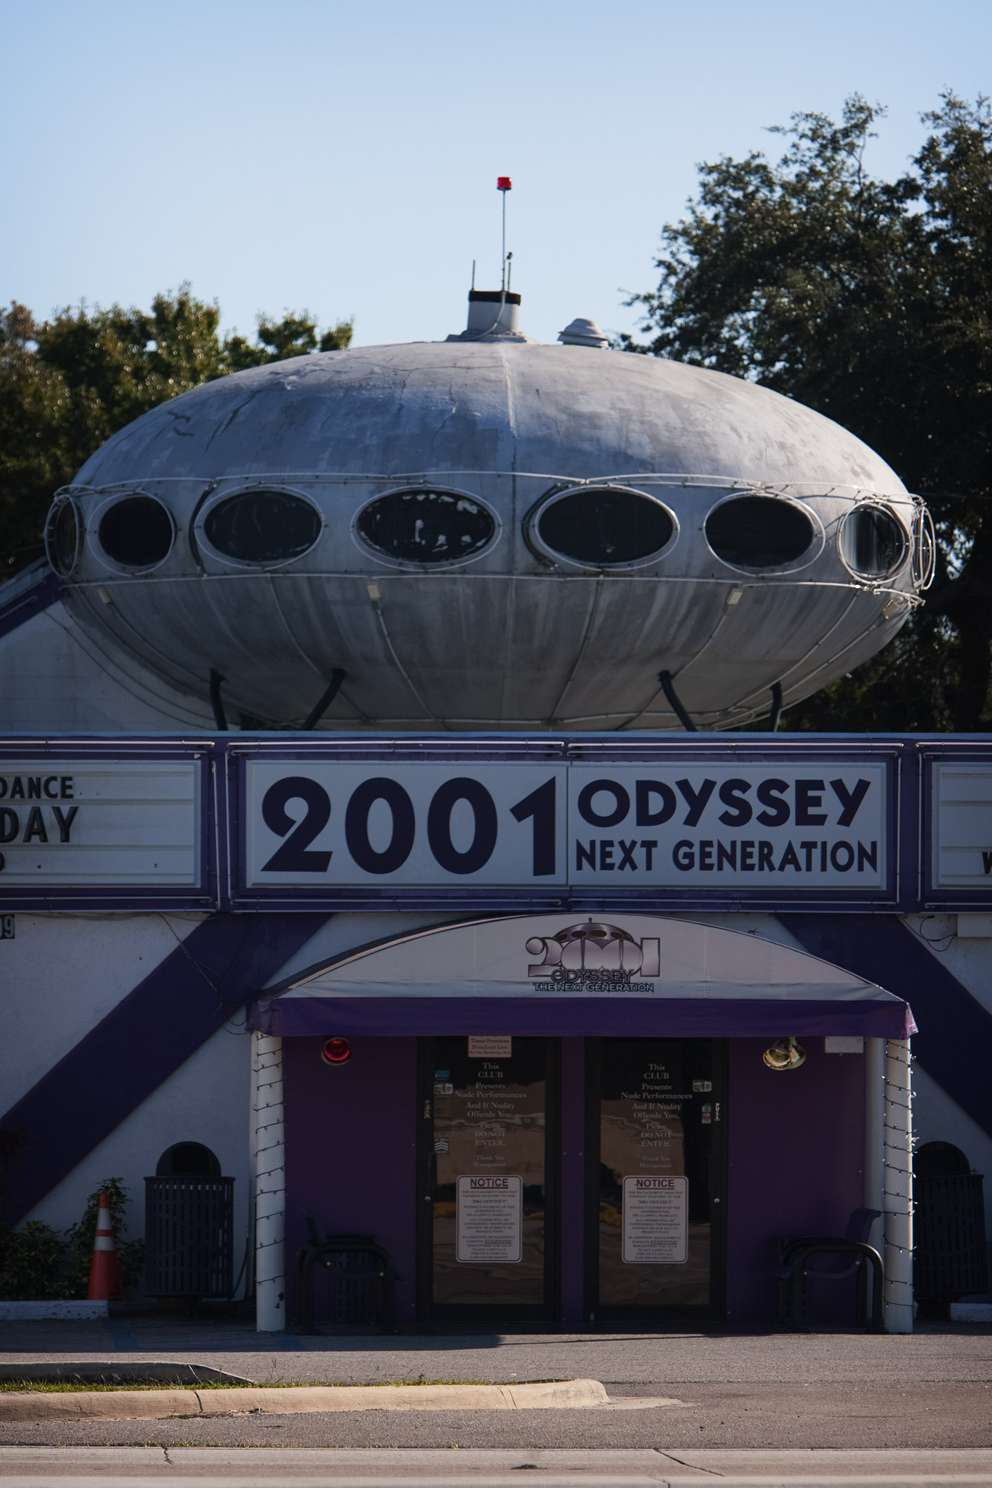 2001 Odyssey is a Tampa strip club that has taken on landmark status because of the orb that sits atop its roof. Times.